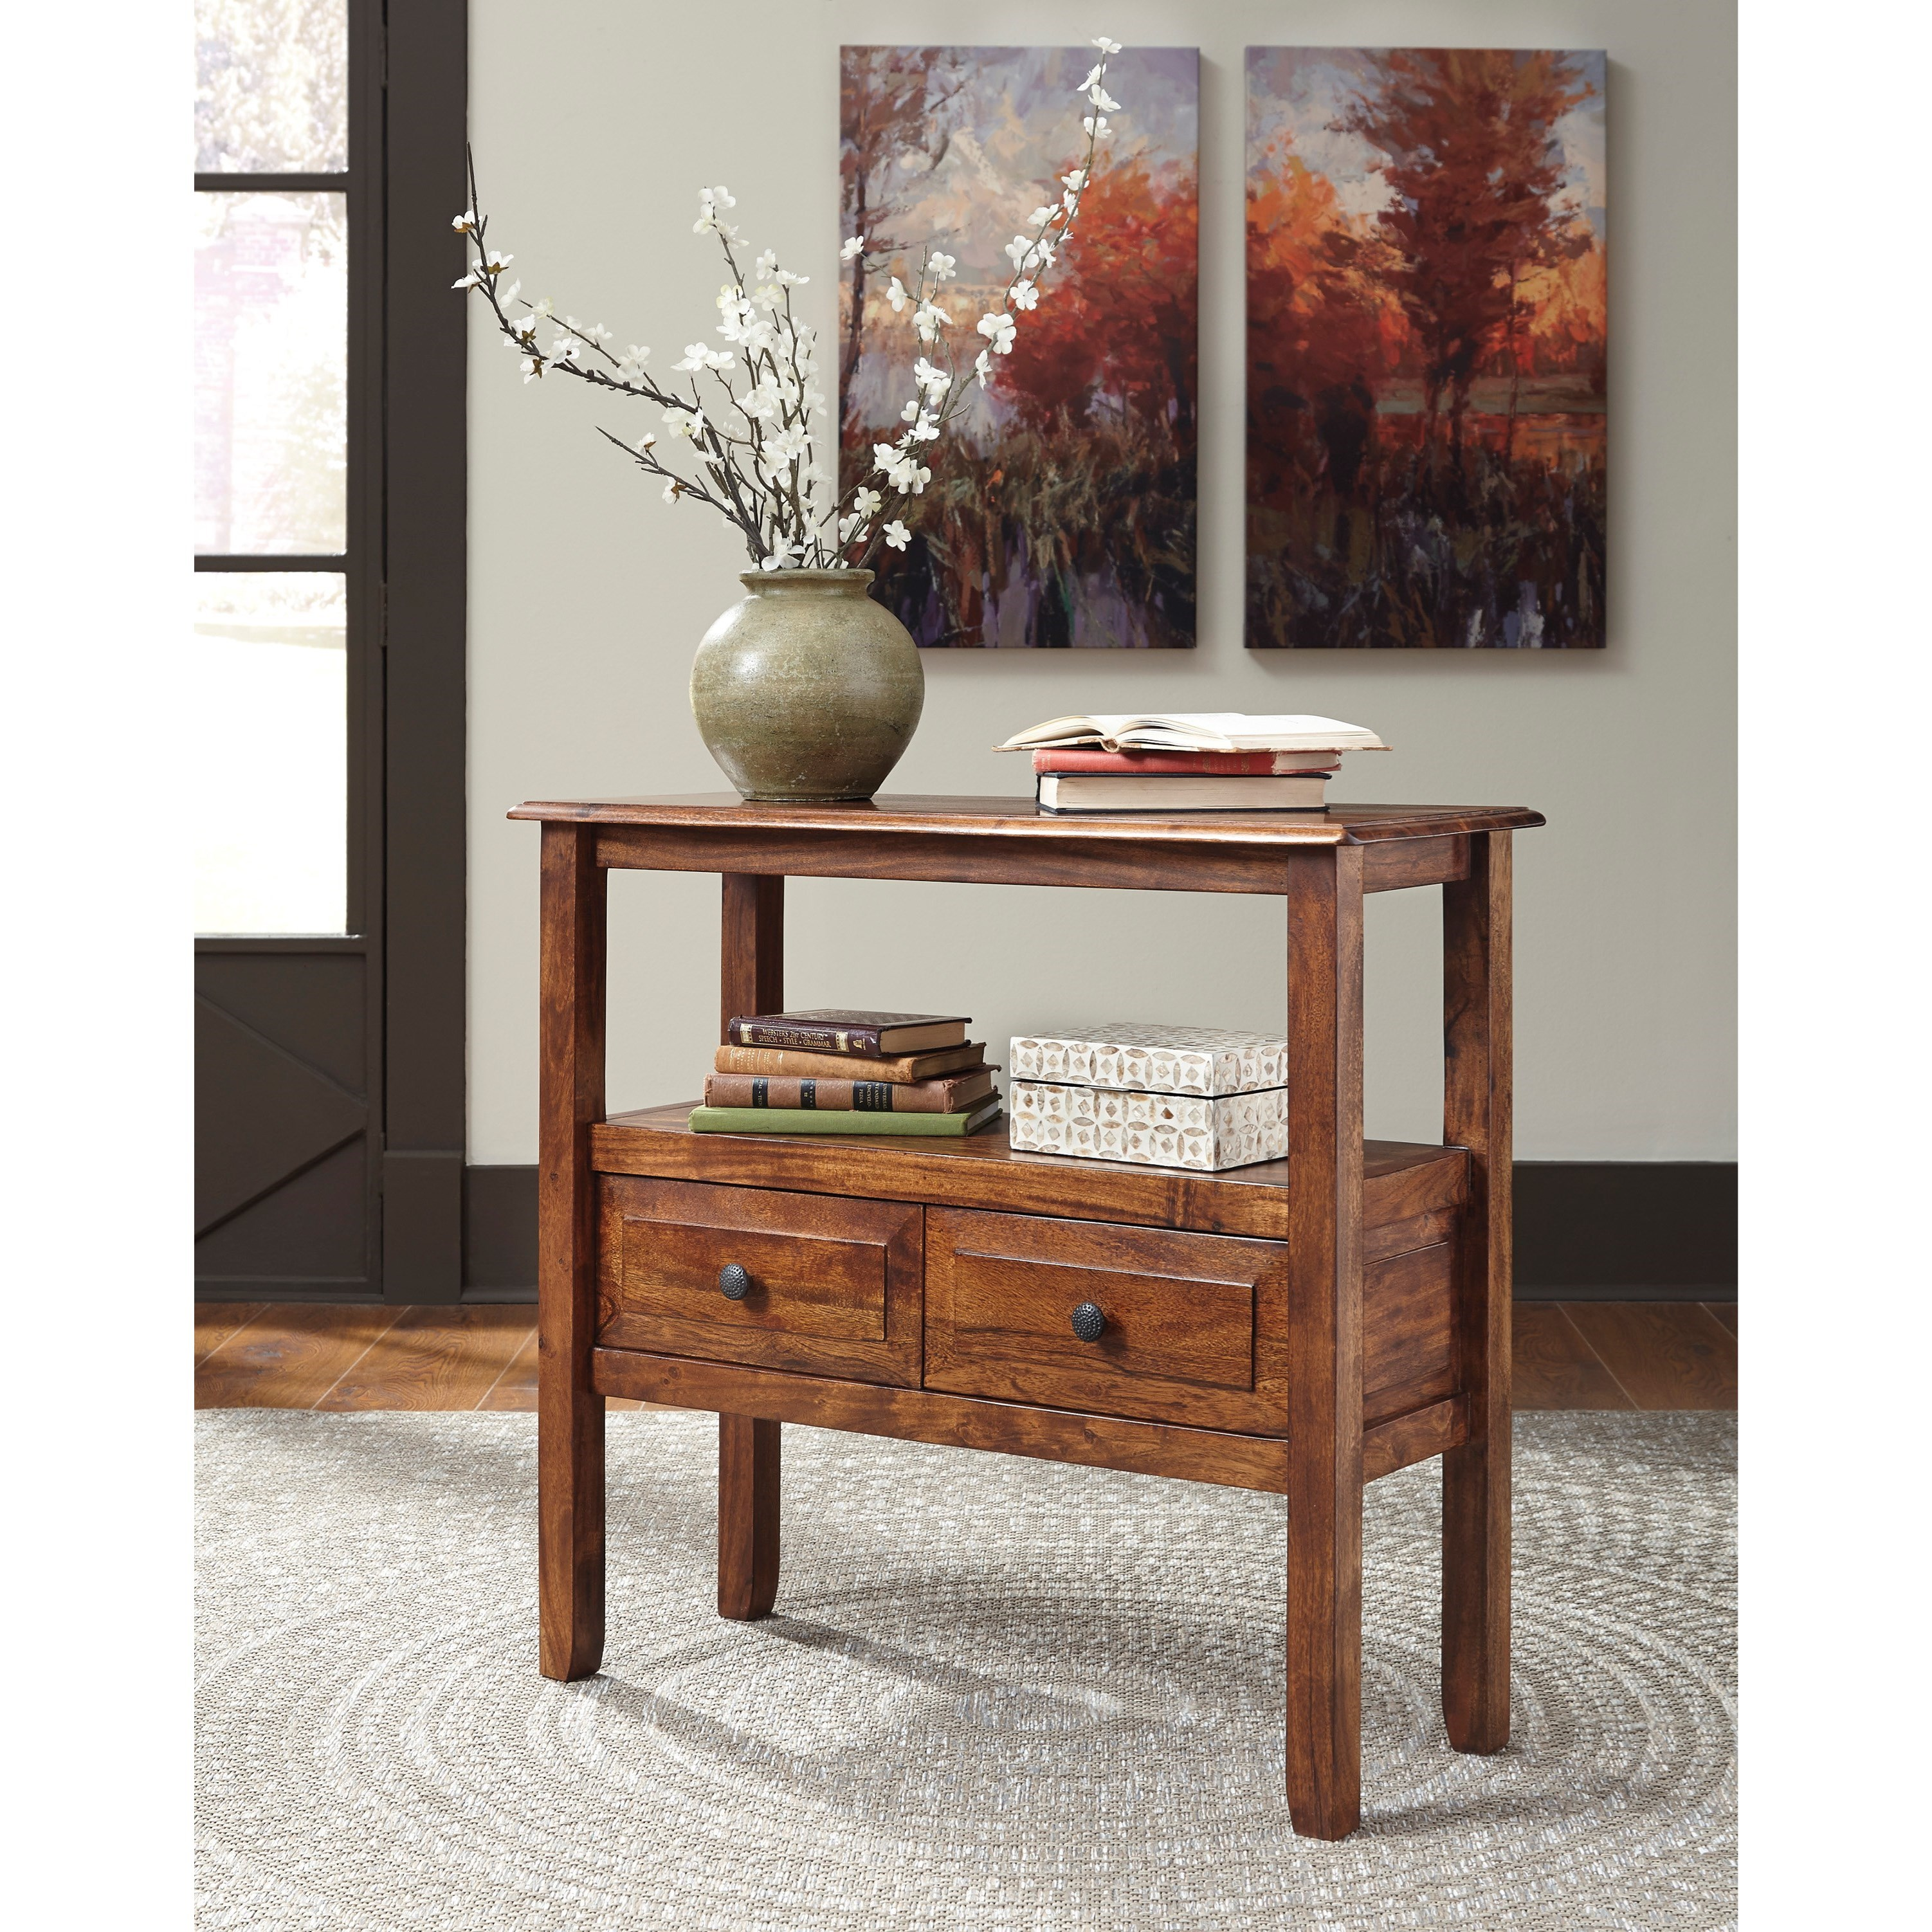 acacia solid wood accent table signature design ashley wolf products color abbonto console chest drawers corner end target wall mirrors side with umbrella hole unusual tables